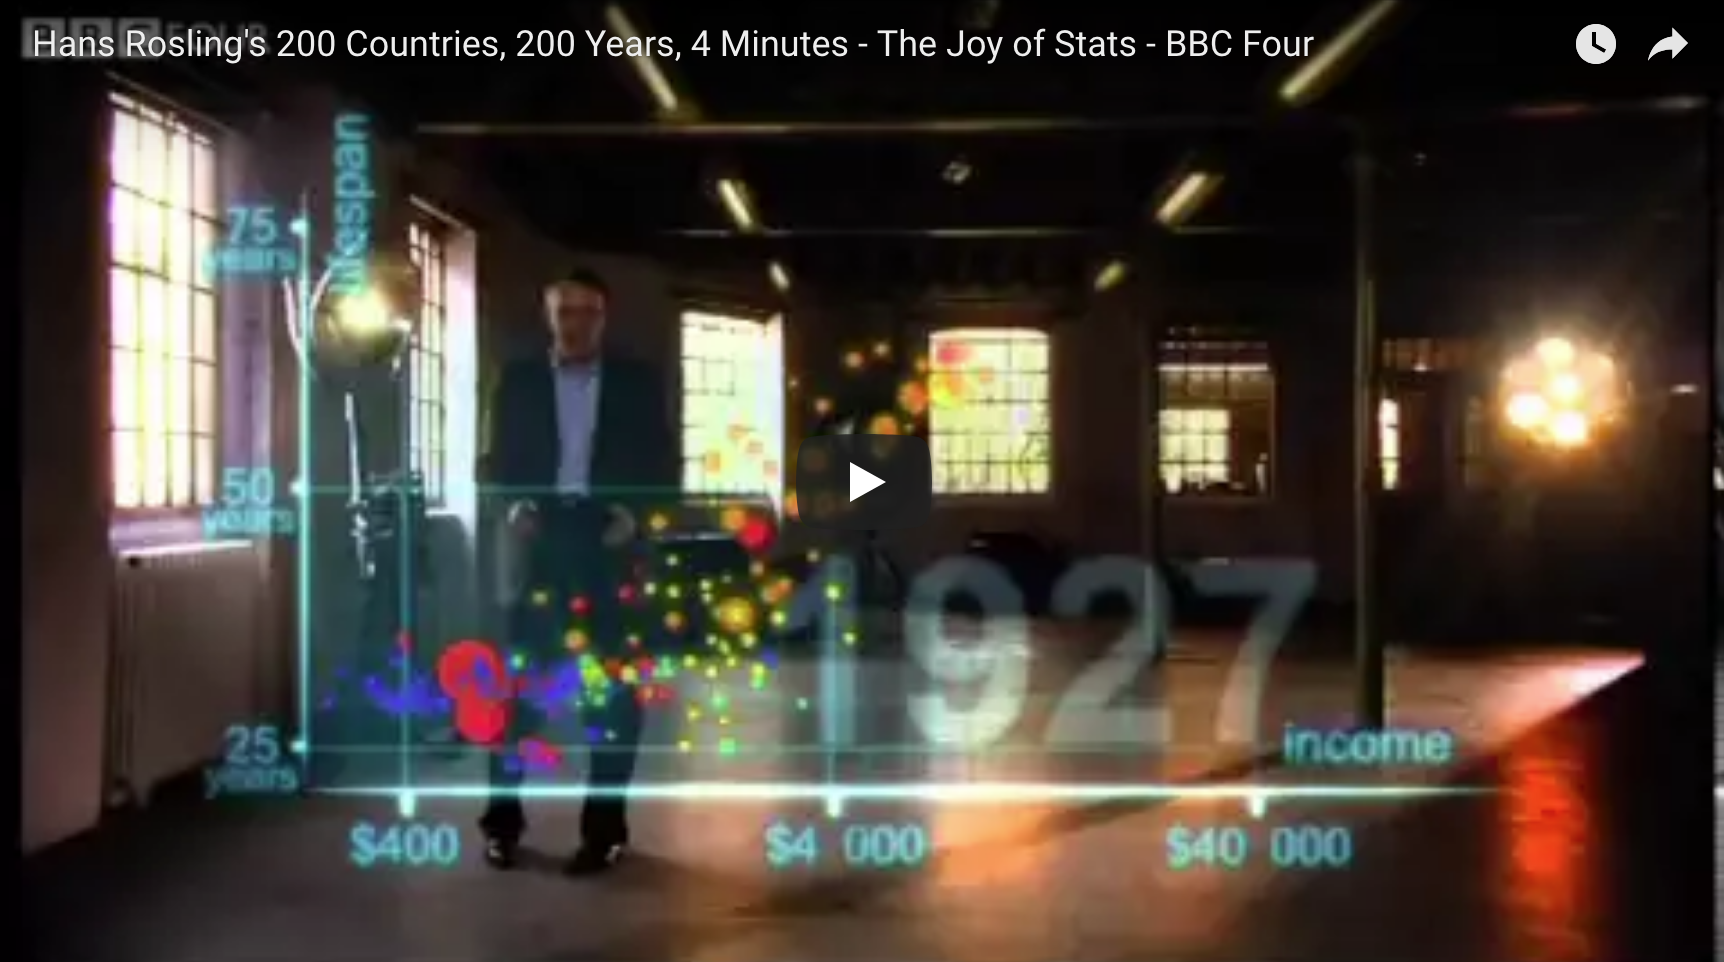 200 Countries, 200 Years, 4 Minutes – Hans Rosling